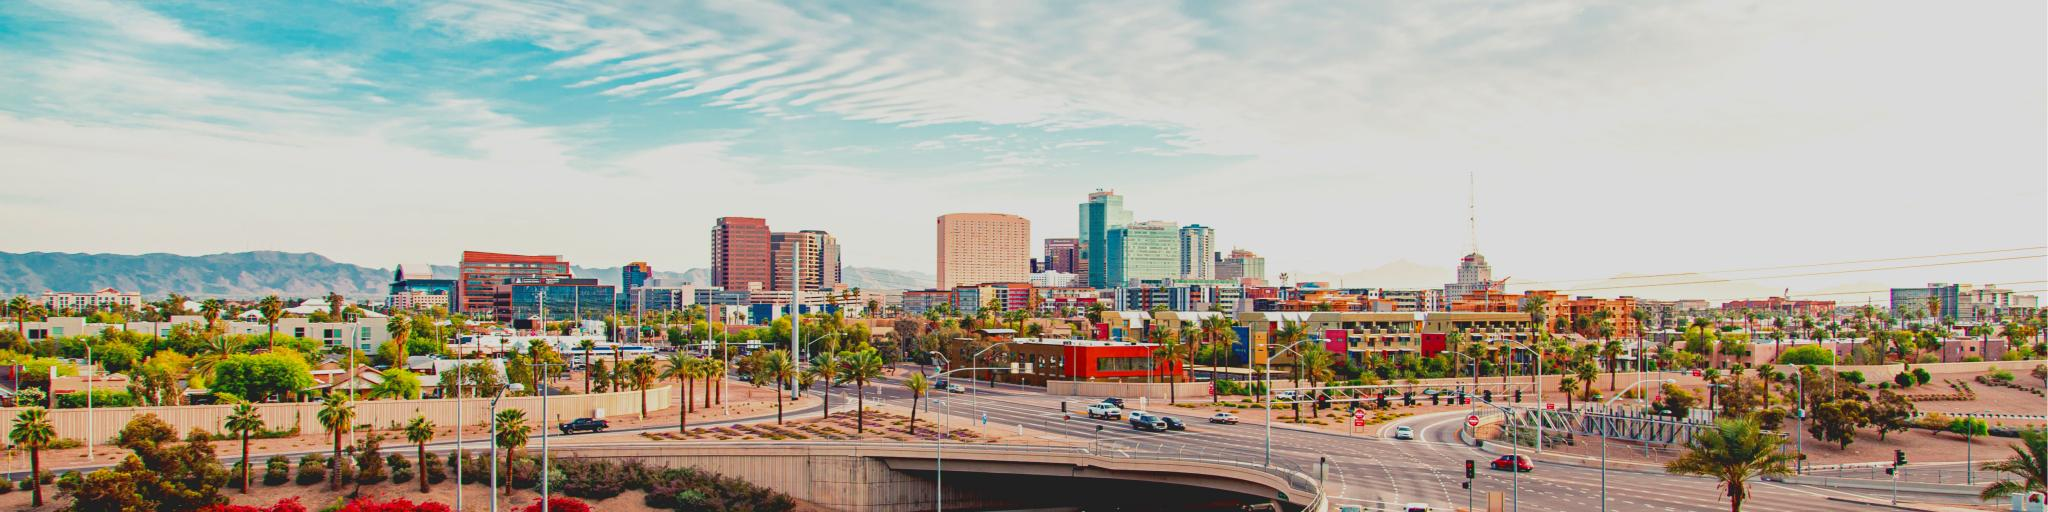 A scenic view of the cars driving along the intersecting highway with palm trees and bushes planted along the road with a picture of the skyscrapers of Phoenix in a fine day with a thin sheet of clouds covering the blue sky